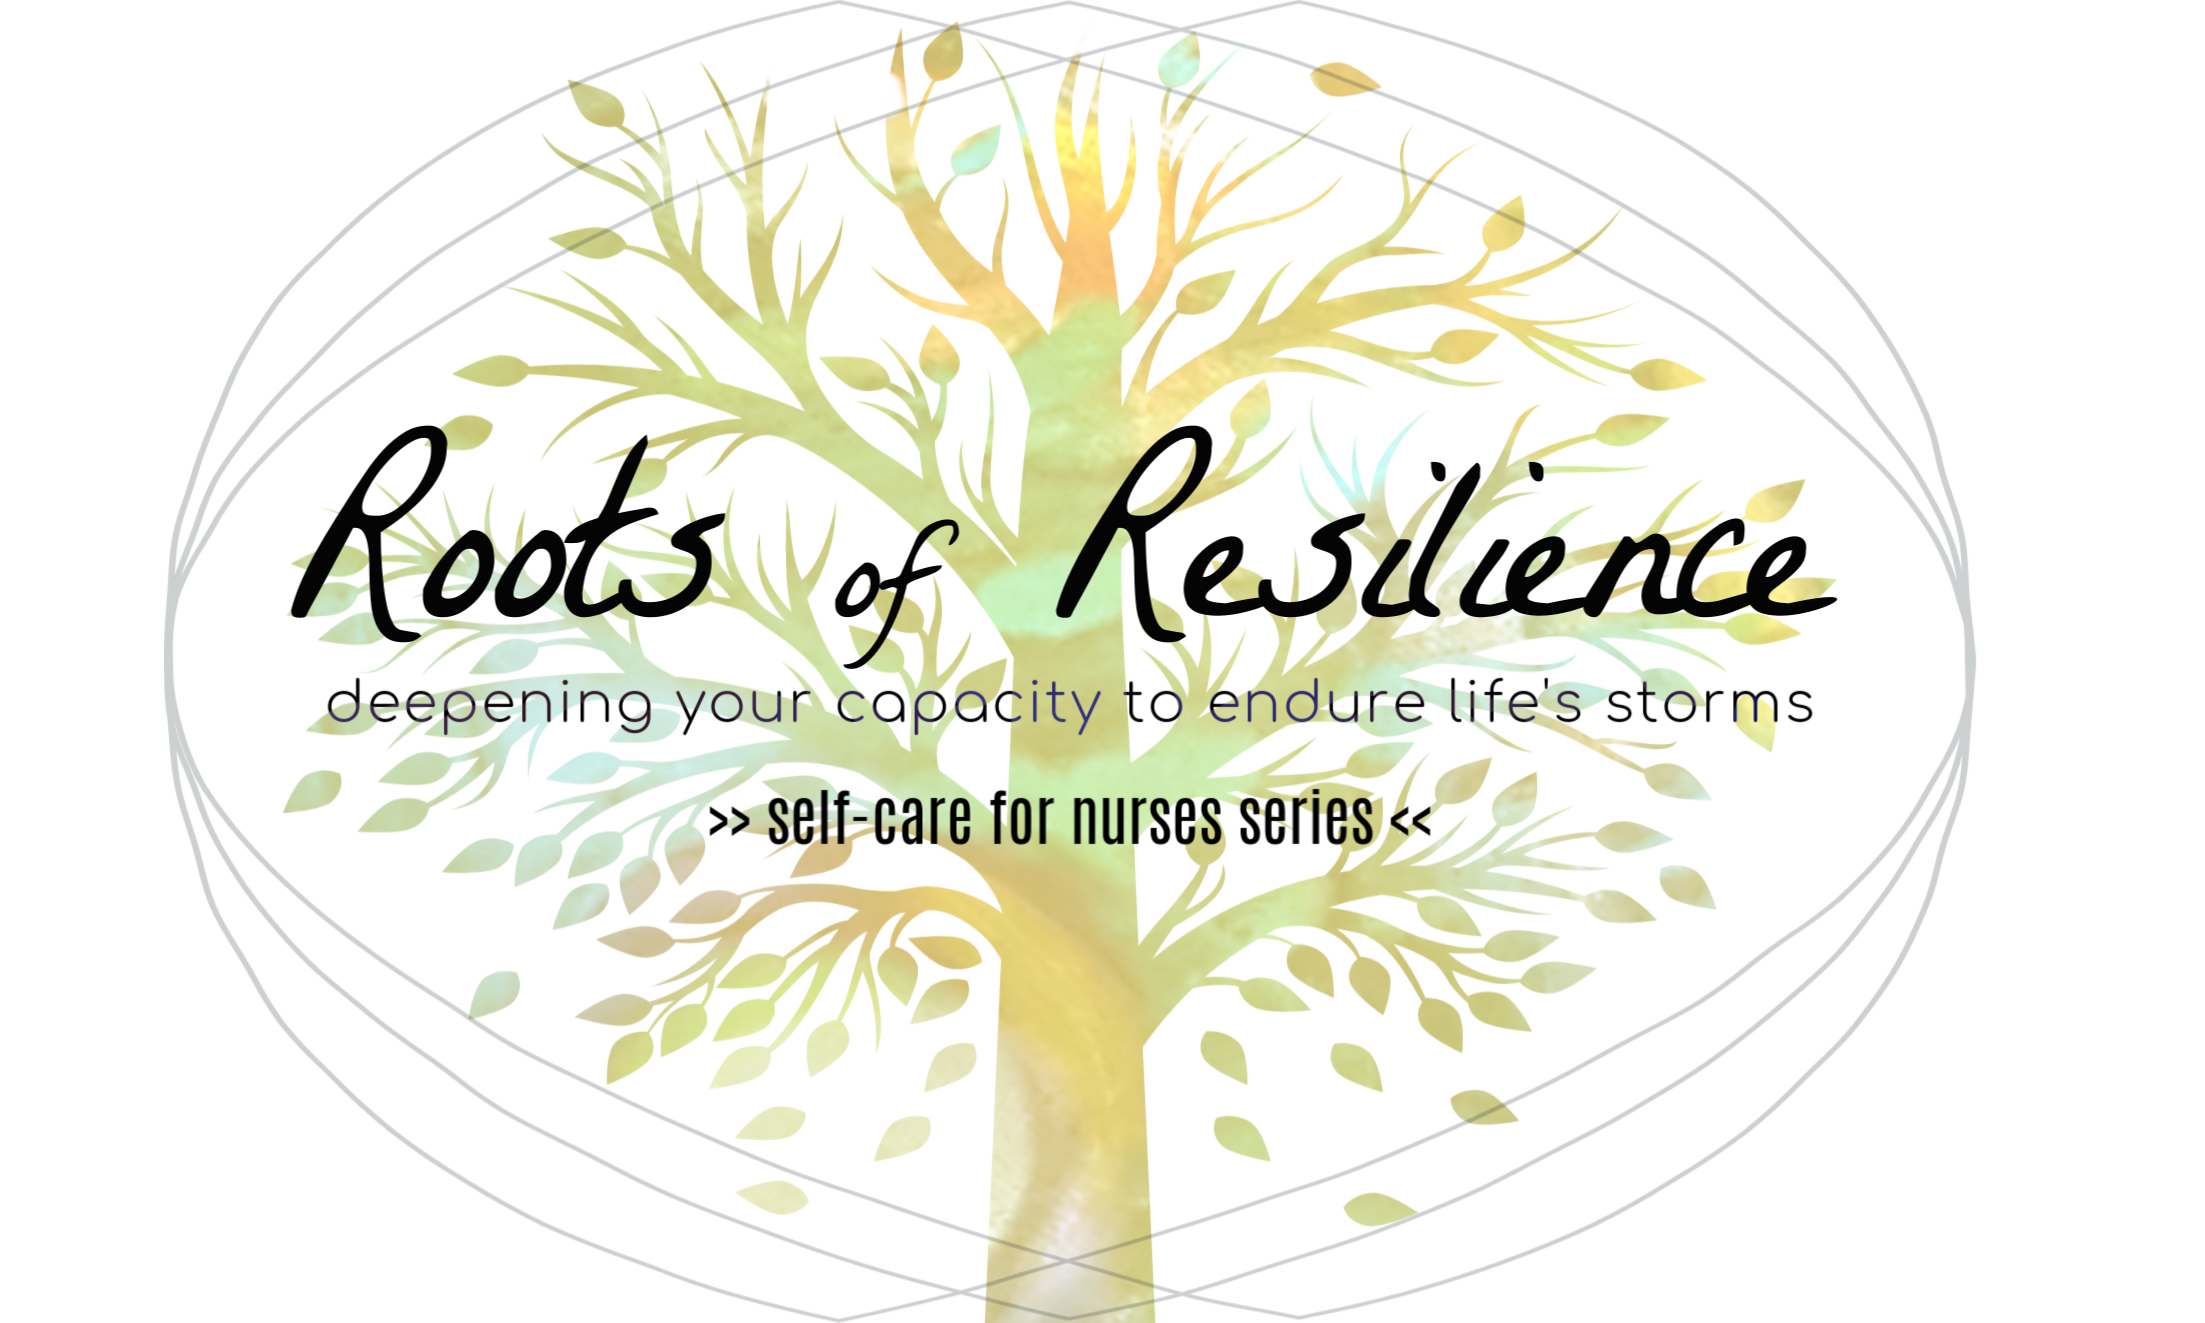 roots of resilience logoNURSE_LG.png